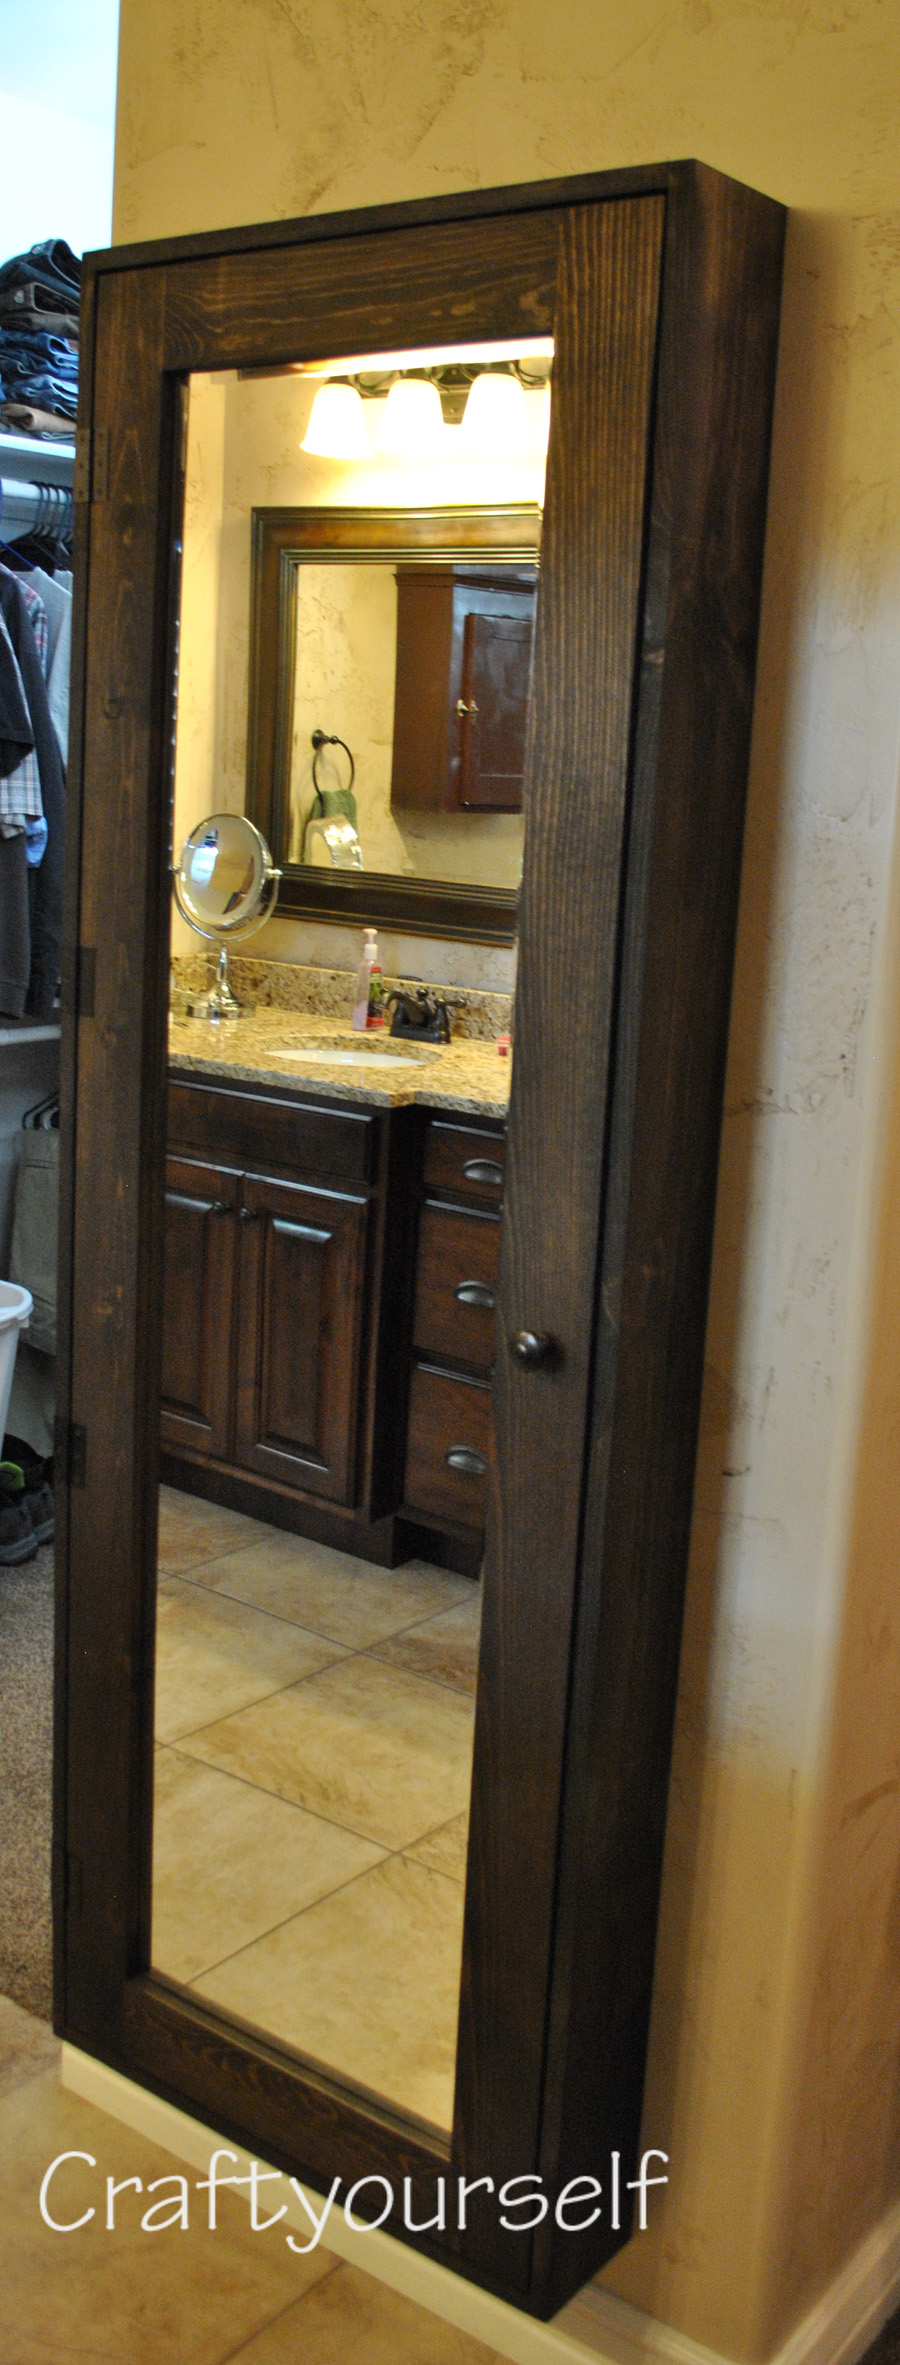 diy bathroom cabinet with mirror craft. Black Bedroom Furniture Sets. Home Design Ideas